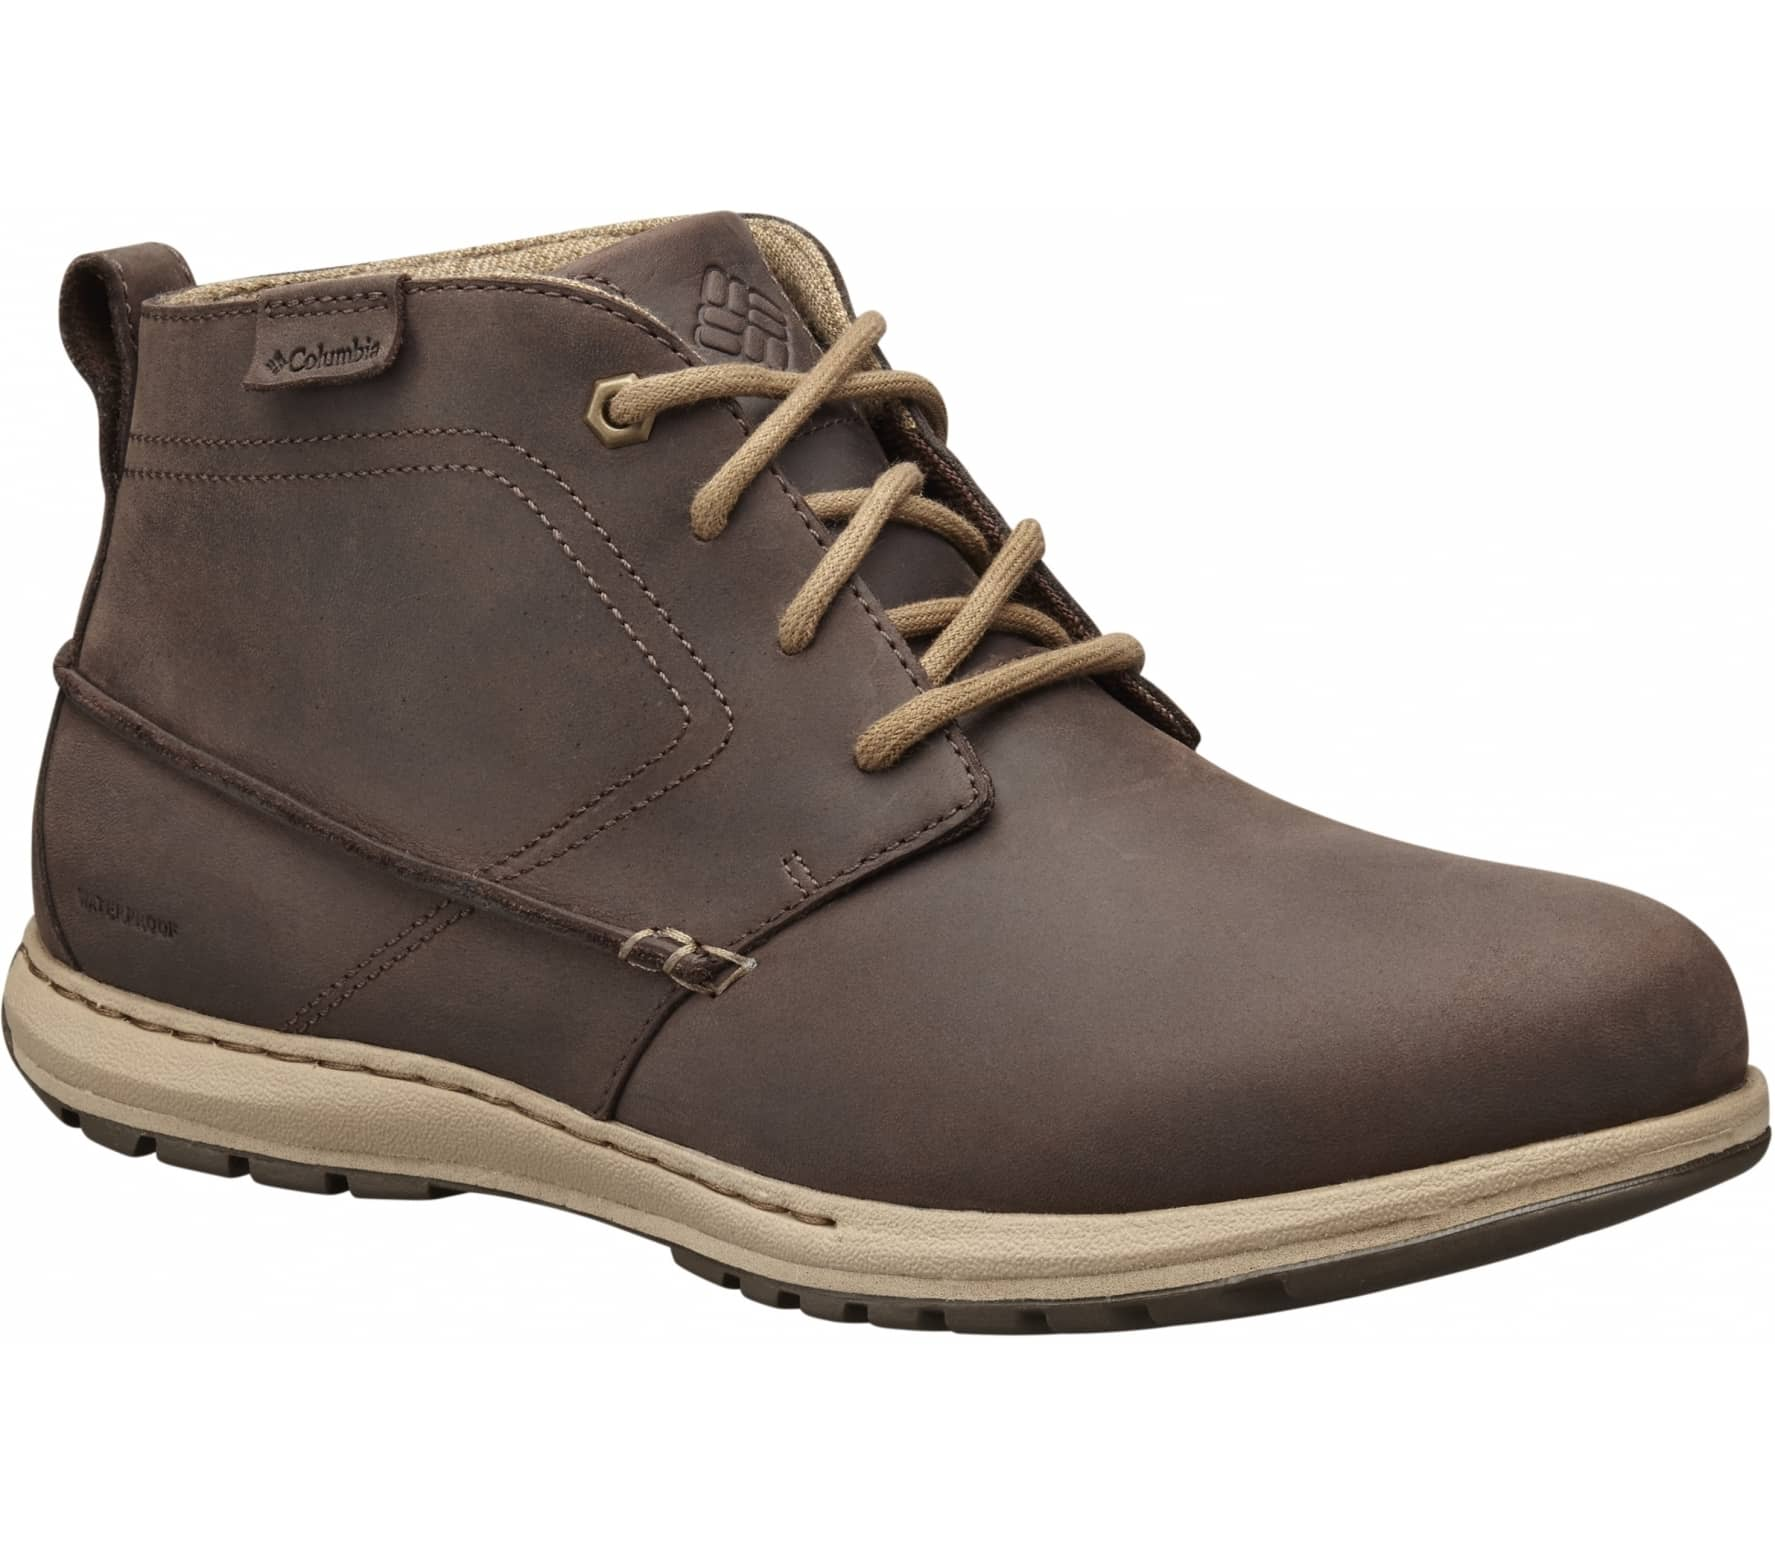 Chukka Columbia Chaussures Hommes Davenport D Waterproof Leather UPnHS5Pa